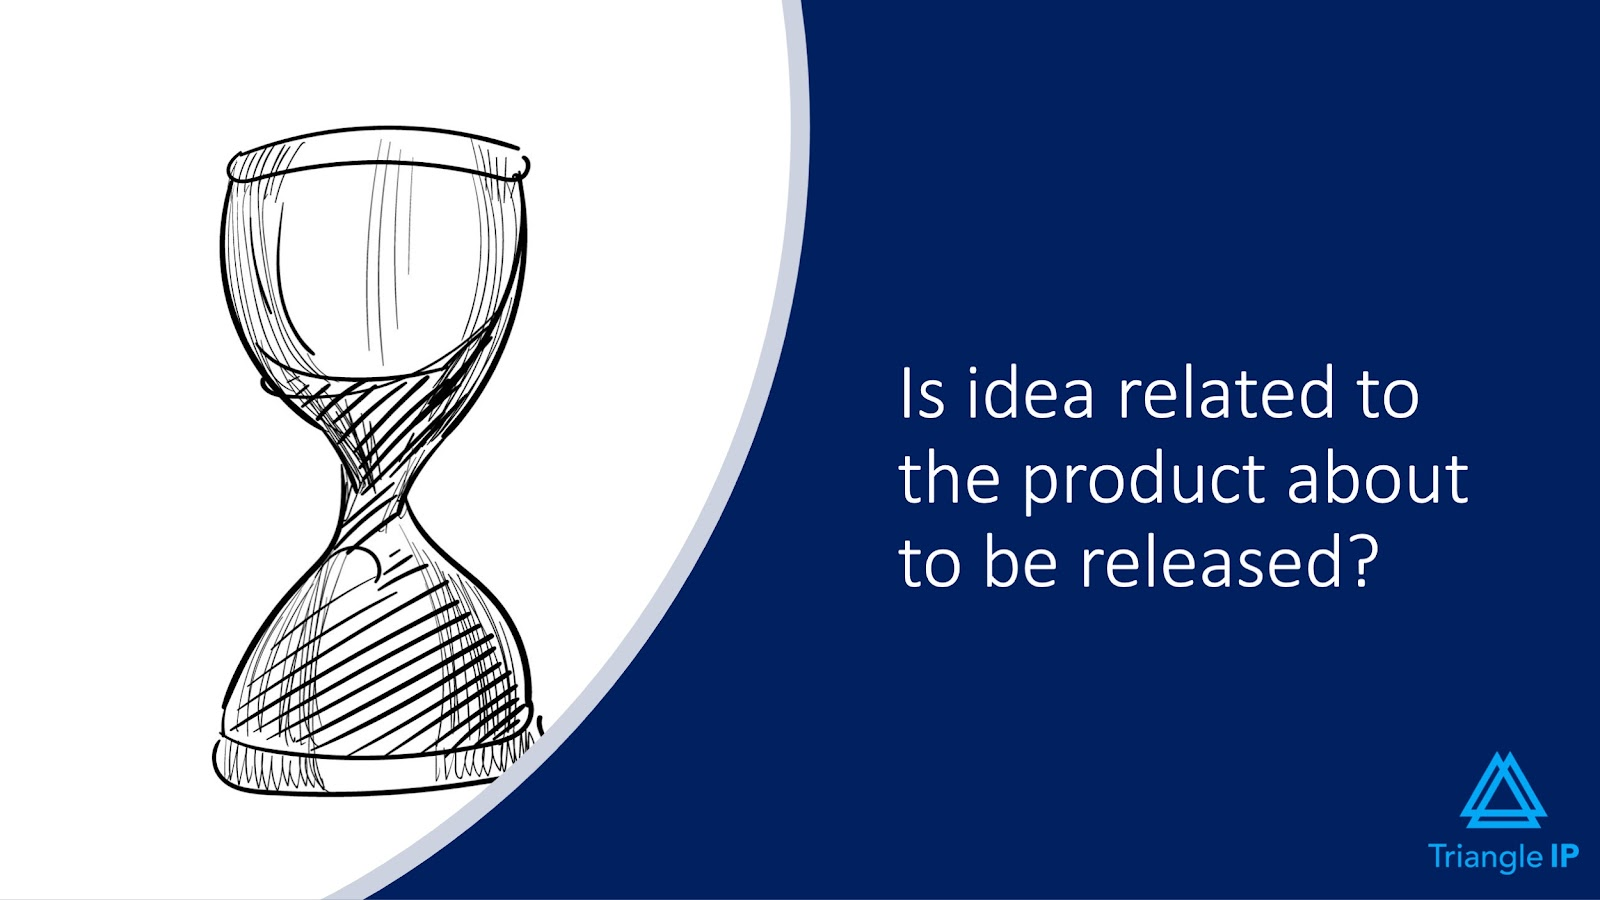 Evaluating Ideas for Patentability | Q3 - Is idea related to the product about to be released?